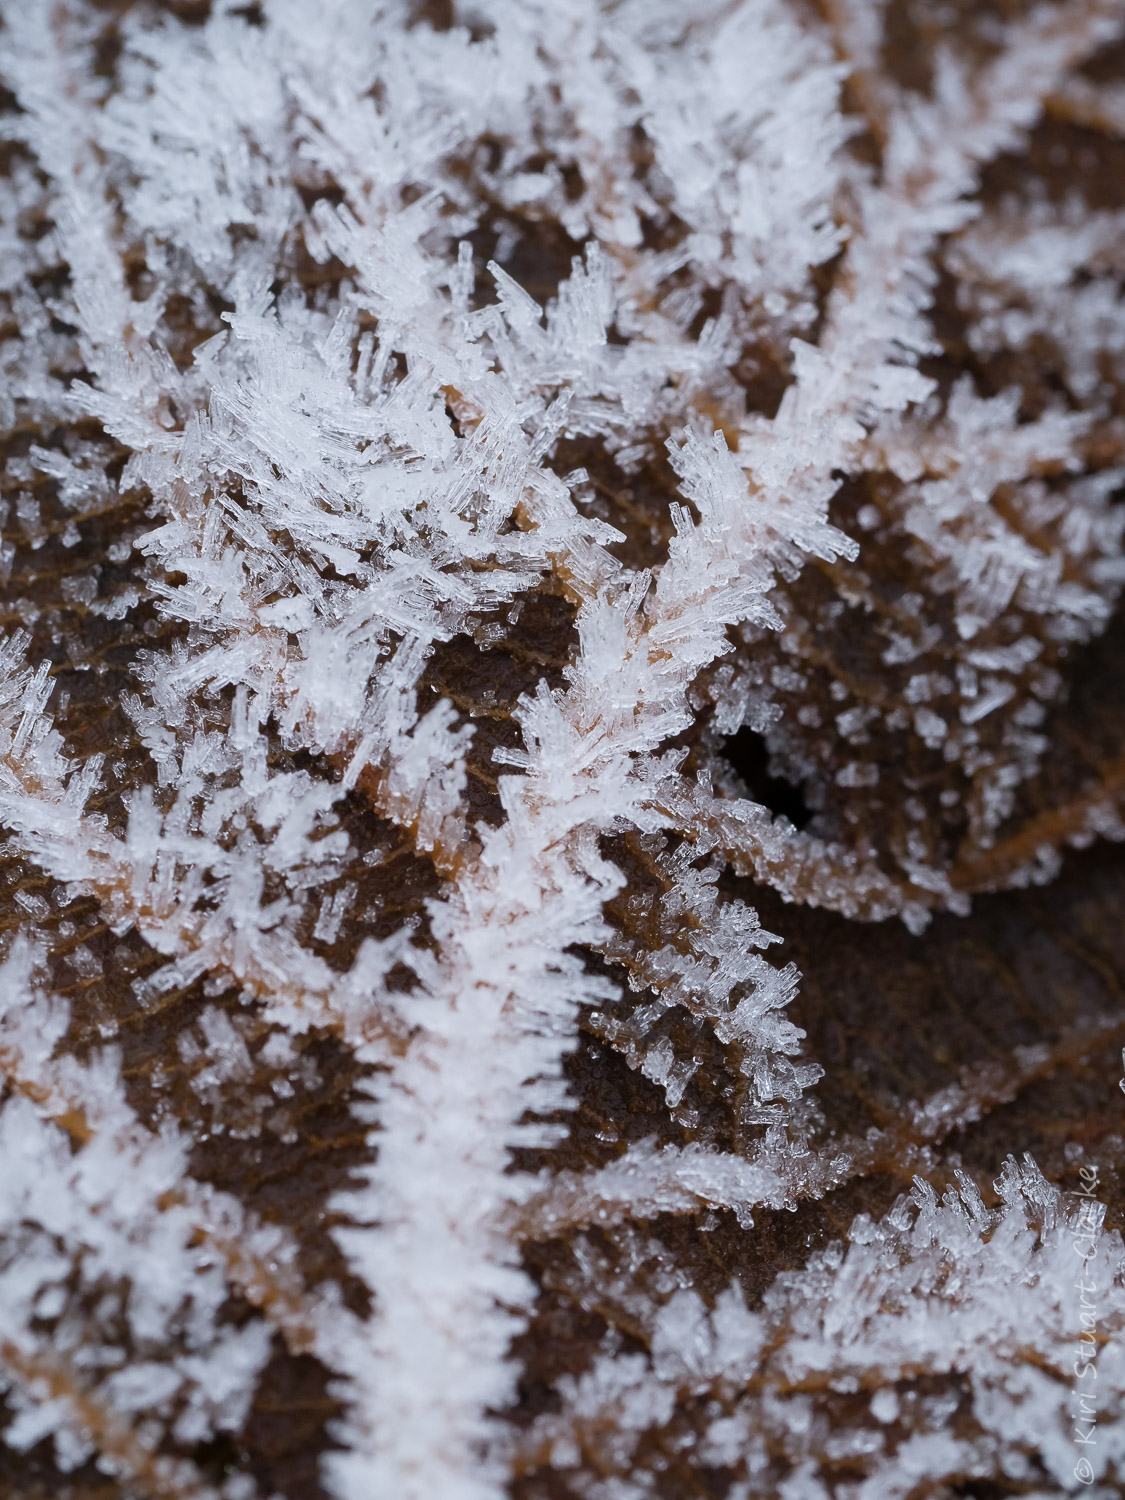 The crystalline nature of hoar frost close up